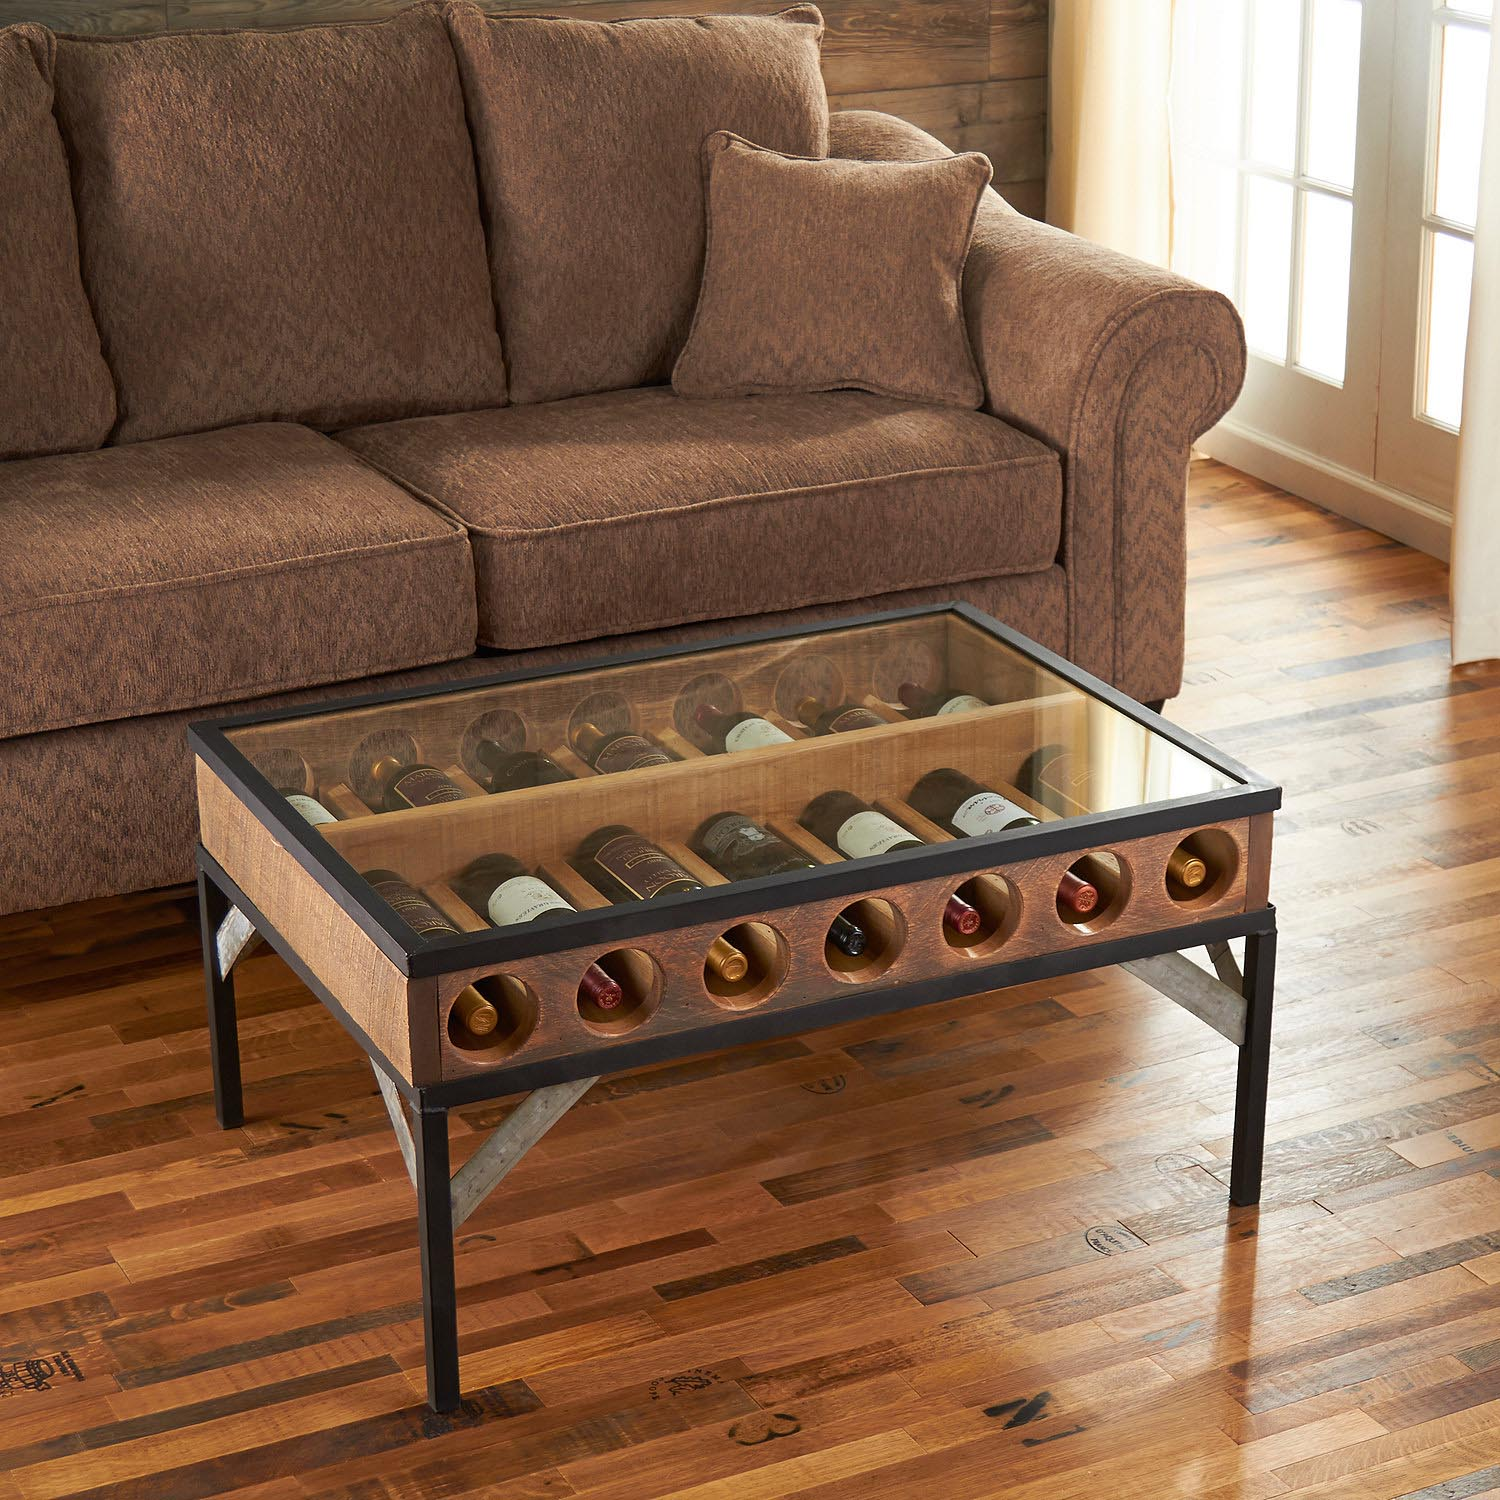 Glass Top Display Coffee Table Canada: Unmatched Furniture Creation